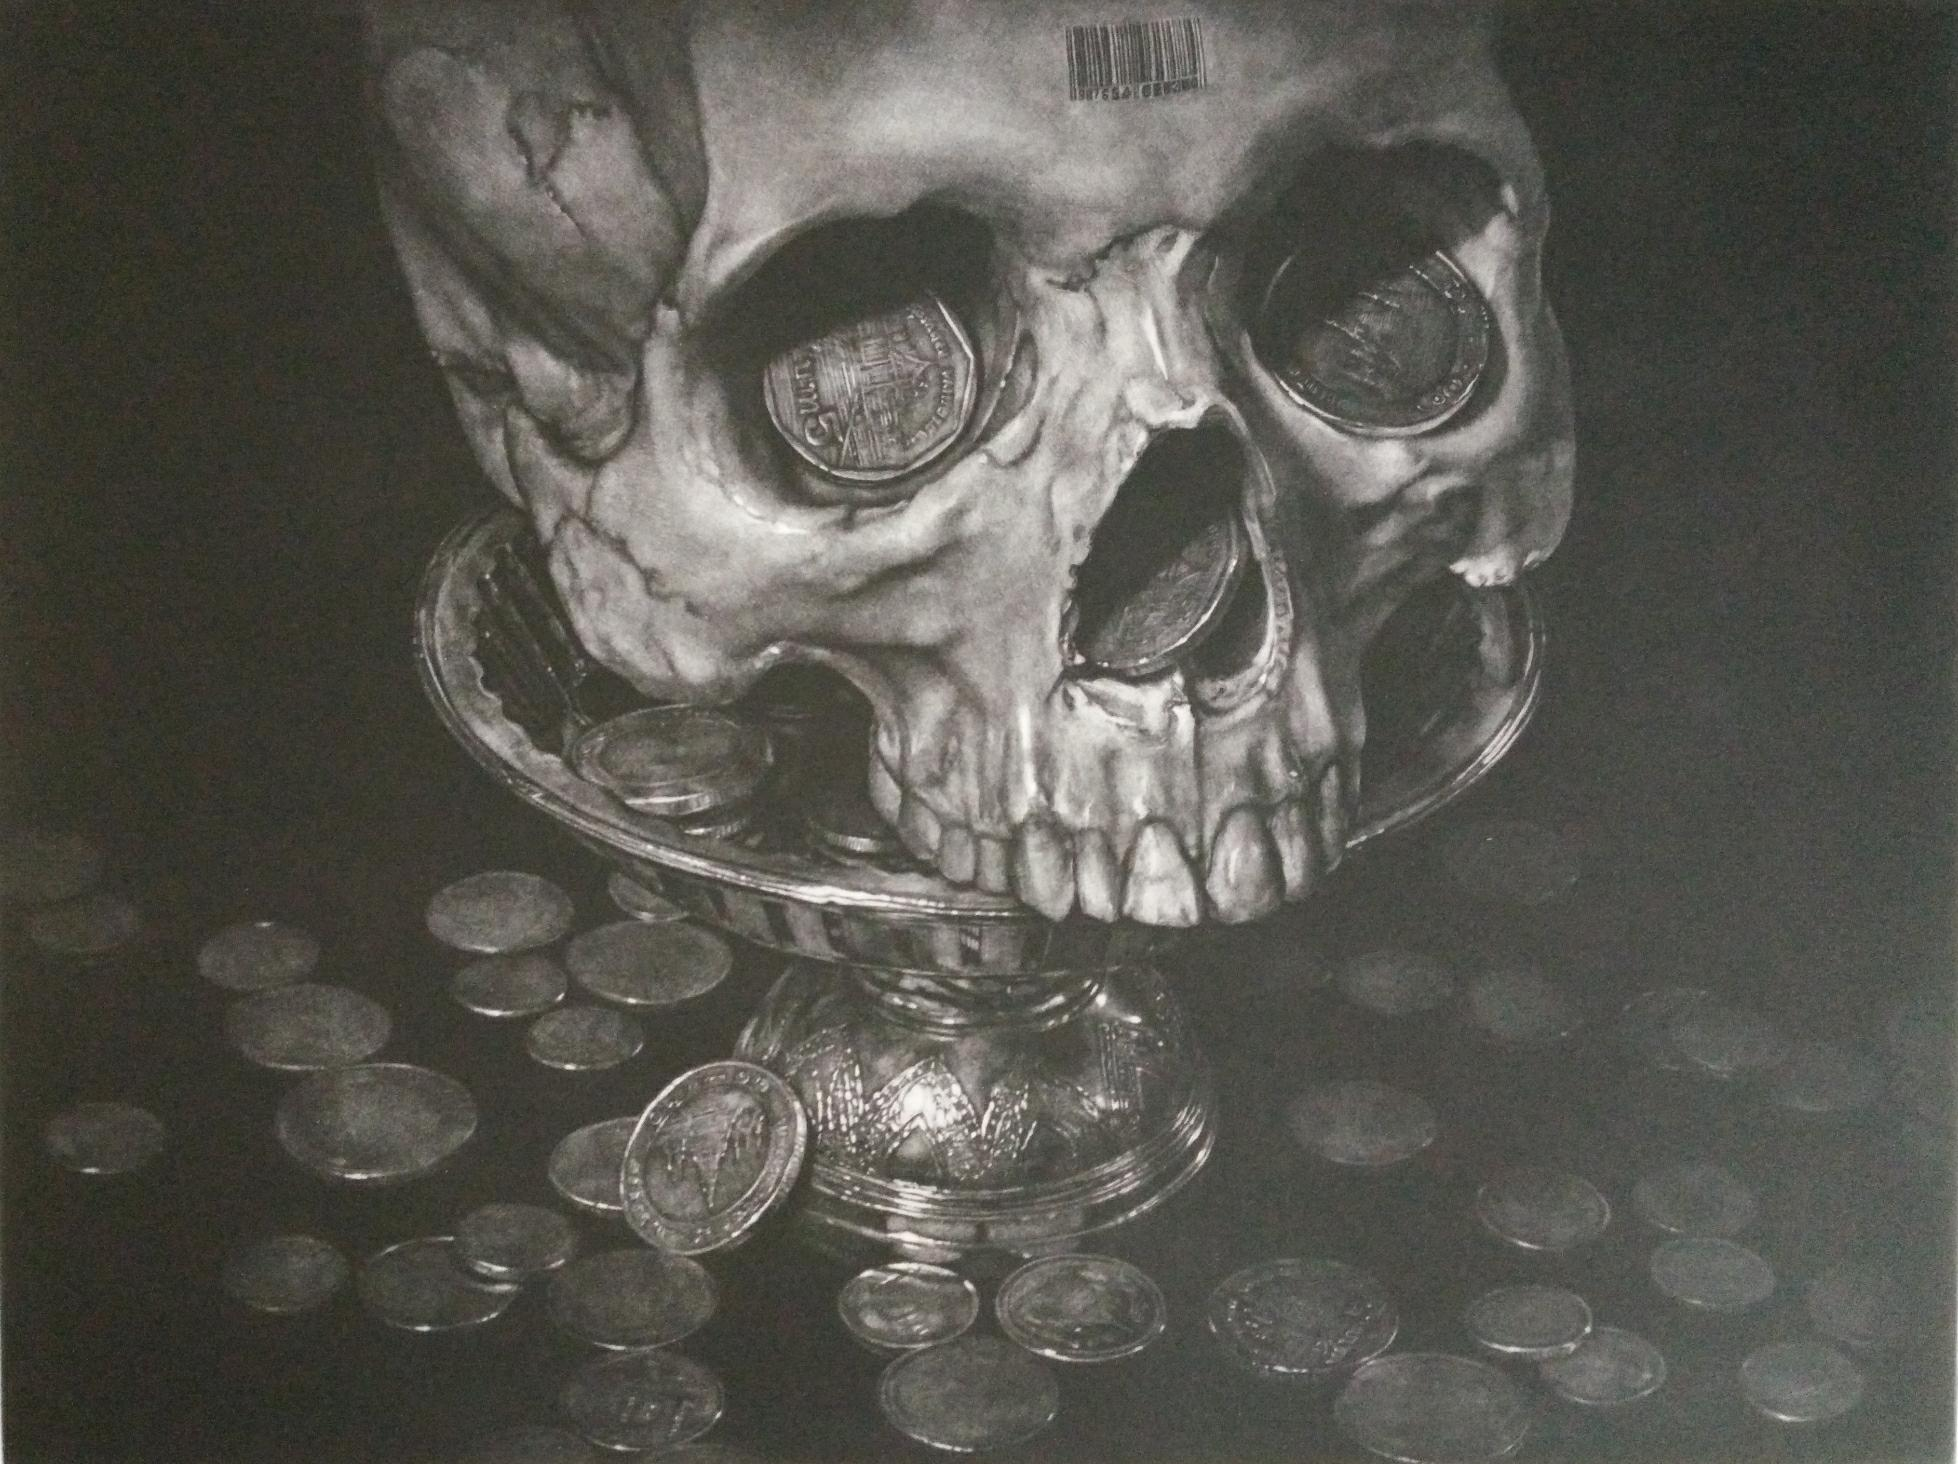 Title: Price of Life (Black Lilac Edition)   Year: 2018  Size: 45x54 cm  Technique: Mezzotint  Edition: of 25